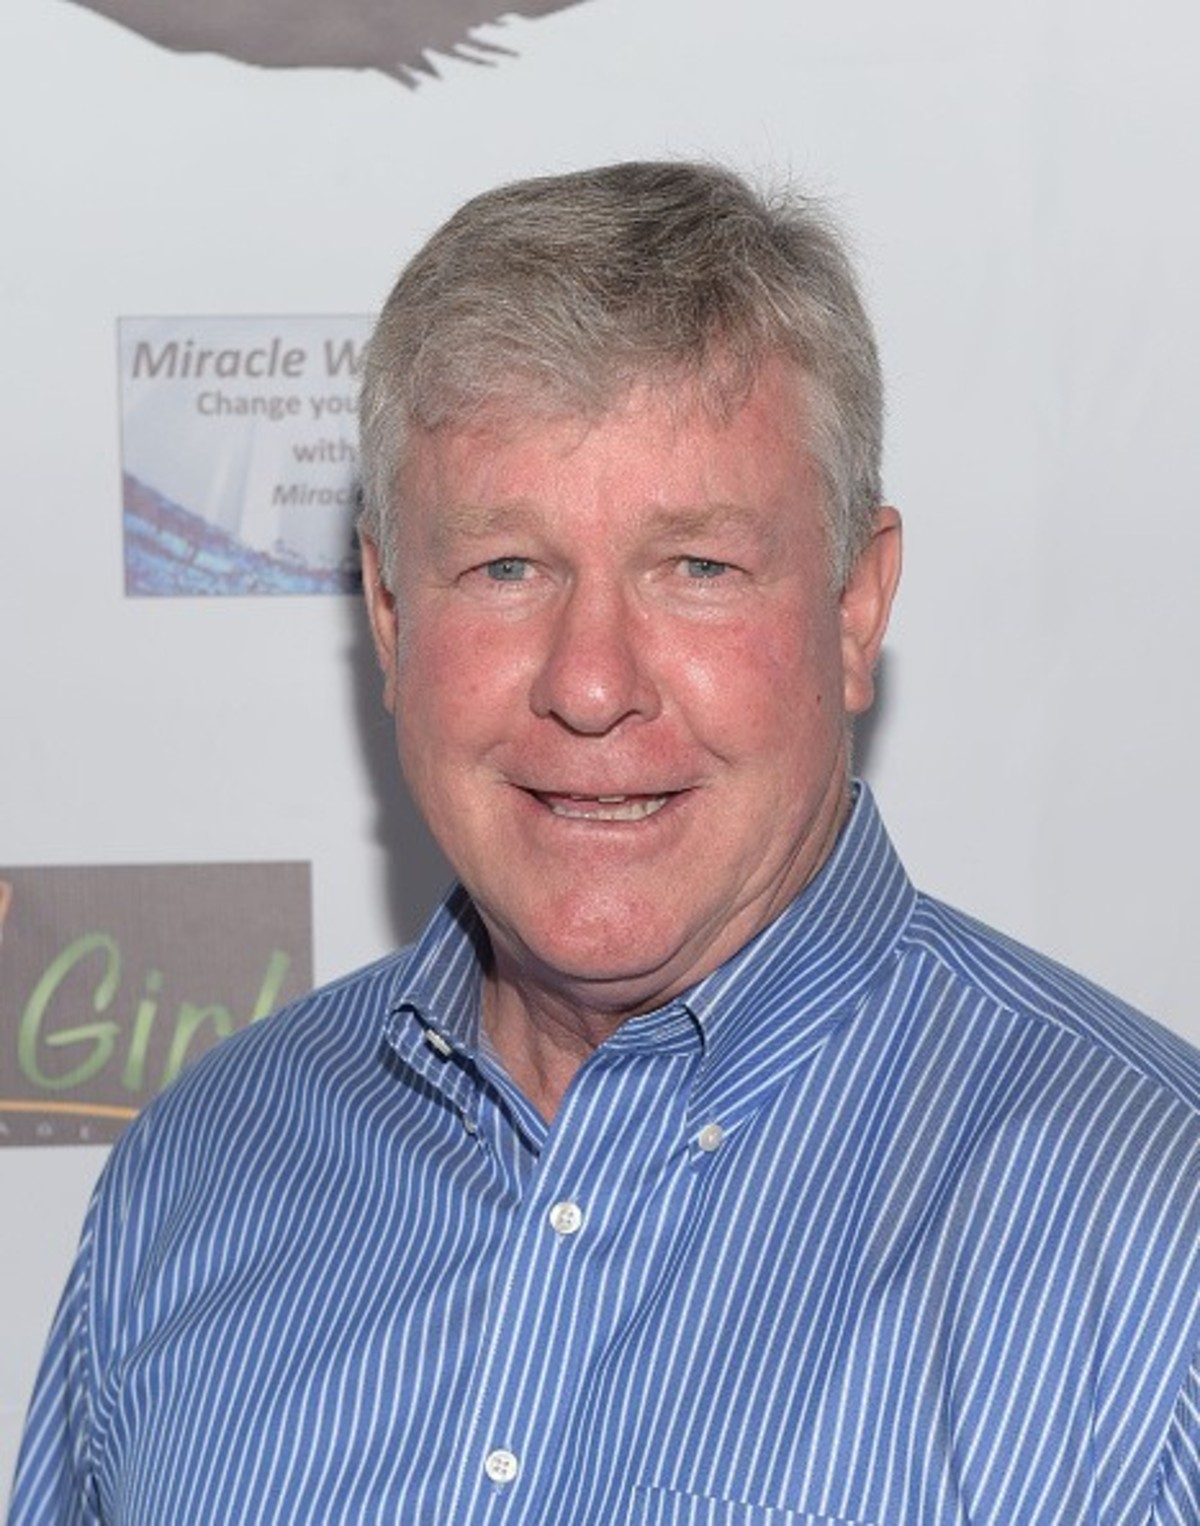 Actor Larry Wilcox at the Miracle Wash. Larry Wilcox has been married three times and is currently living with his third wife Marlene Harmon